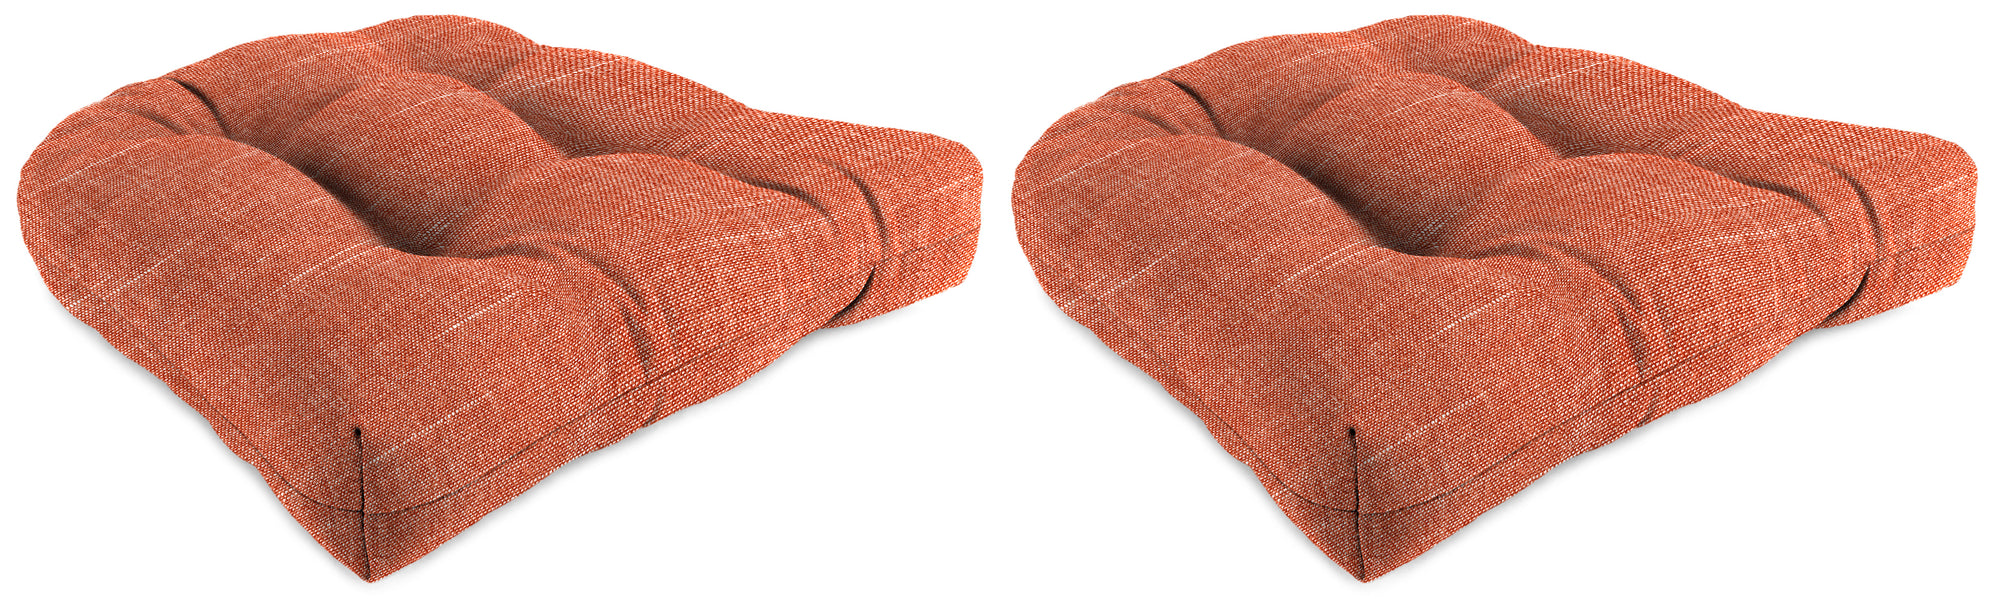 "Set of 2 Outdoor 18"" Wicker Chair Cushions-TORY SUNSET RICHLOOM"